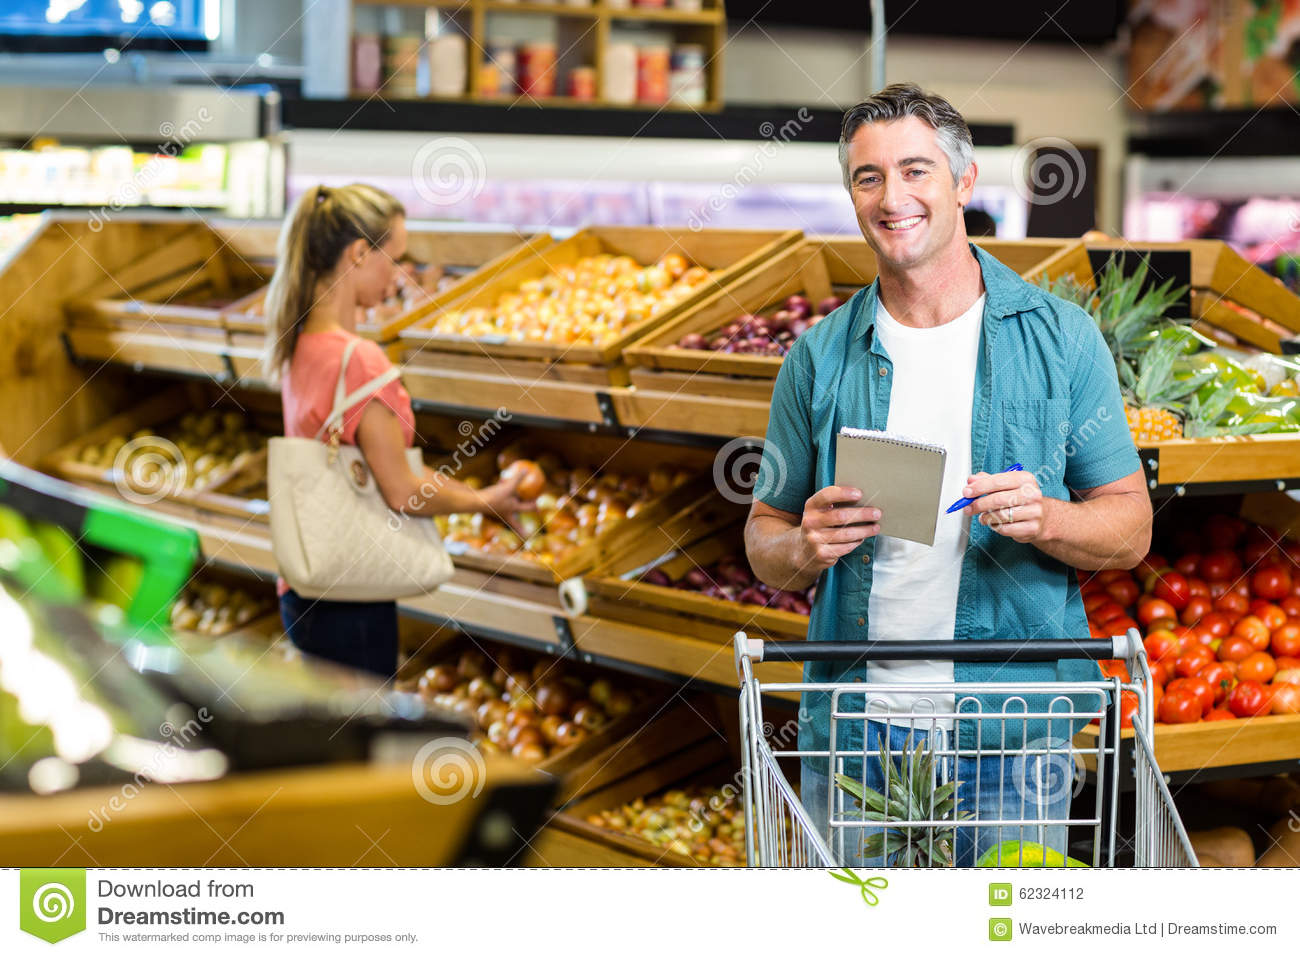 essay about shopping in a supermarket Ielts essay about supermarkets and small shops  even the prices of residential properties go up if there is a supermarket or a shopping mall in their vicinity .